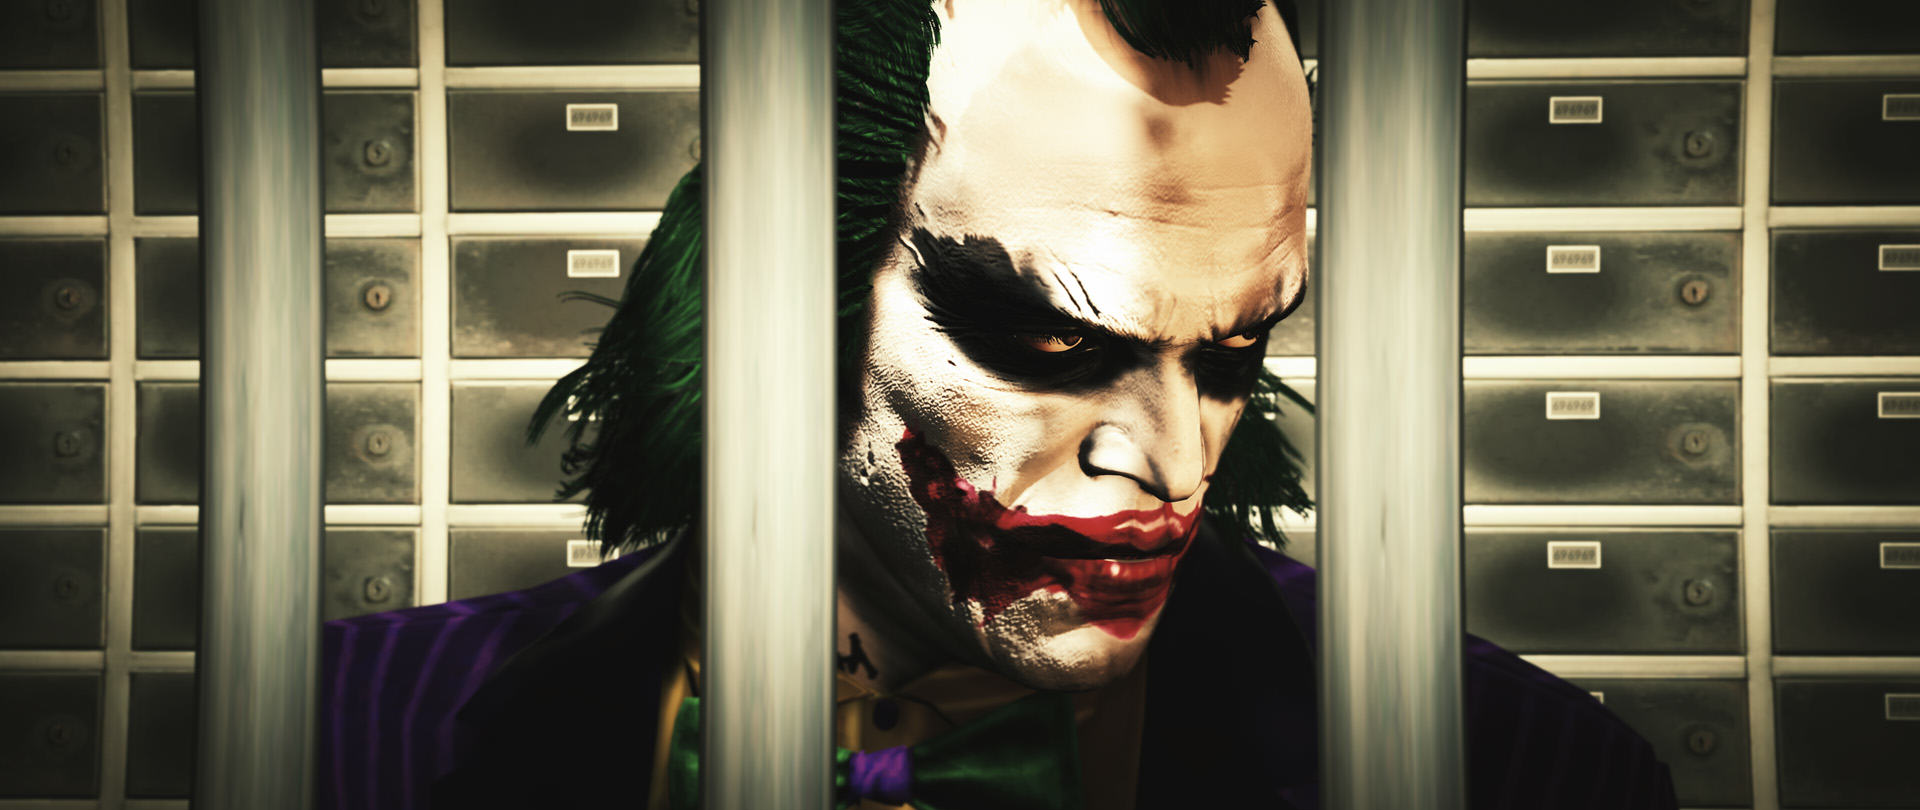 These Photos Prove Trevor From GTA Should Be The Next Joker 55b748fbe6685